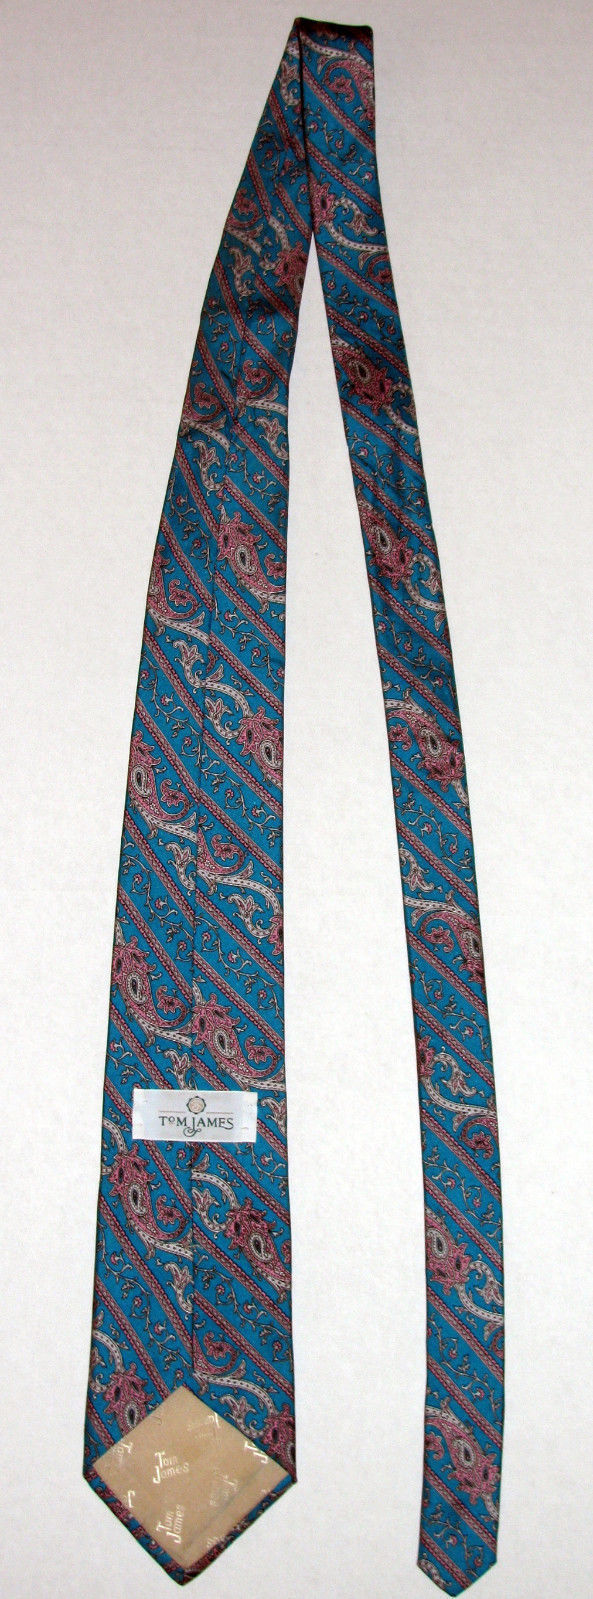 Vintage Tom James Turquoise Blue Green Paisley Silk Necktie Made in USA image 7